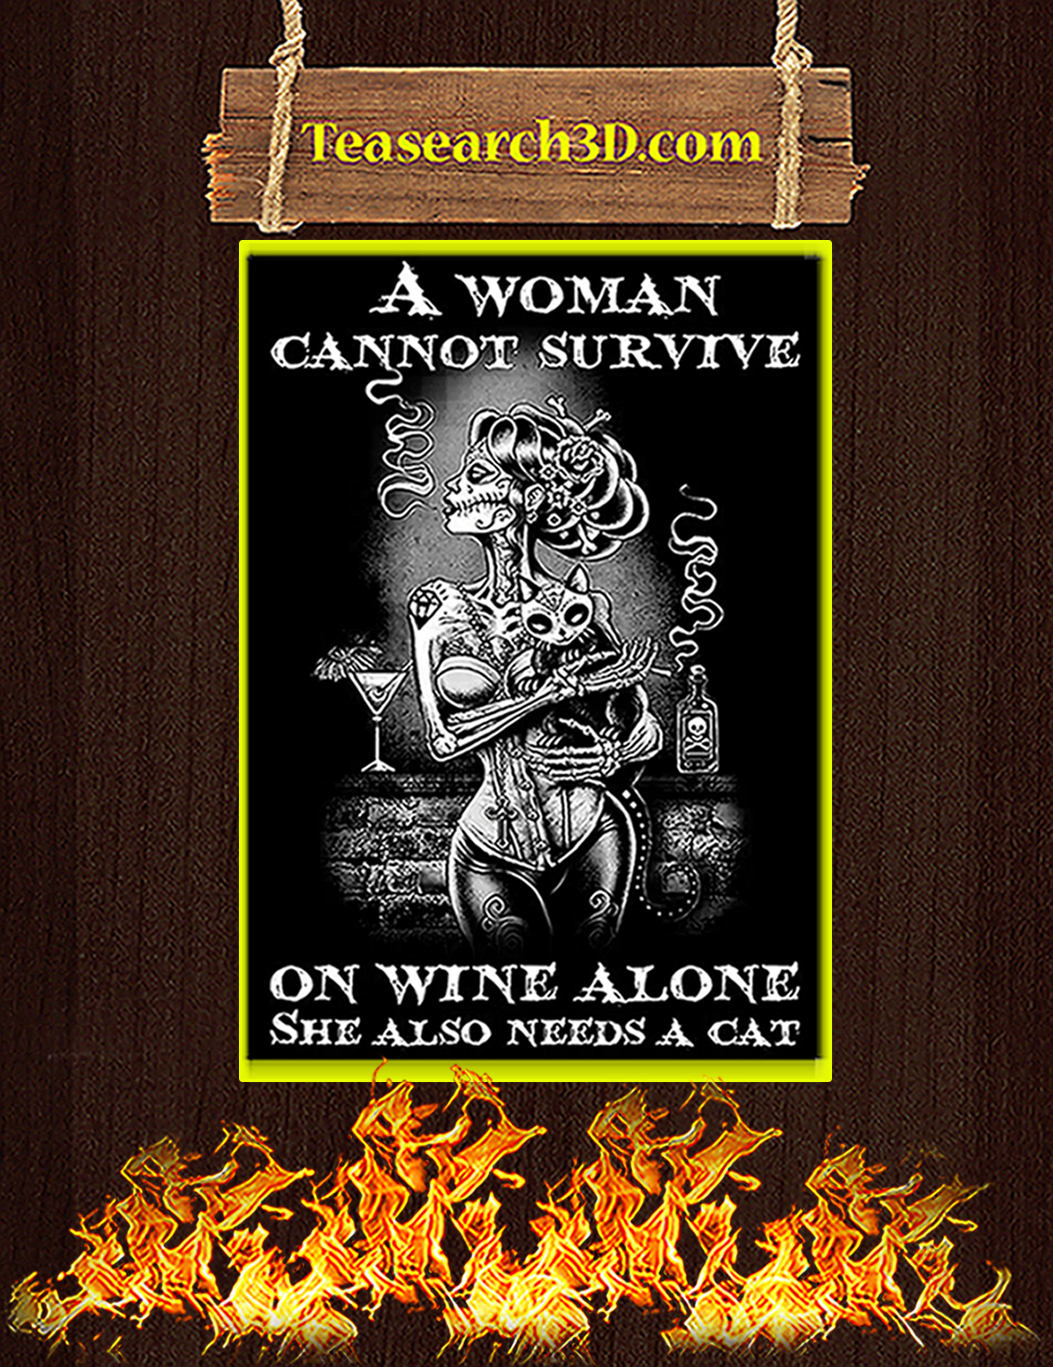 A woman cannot survive on wine alone she also needs a cat poster A1